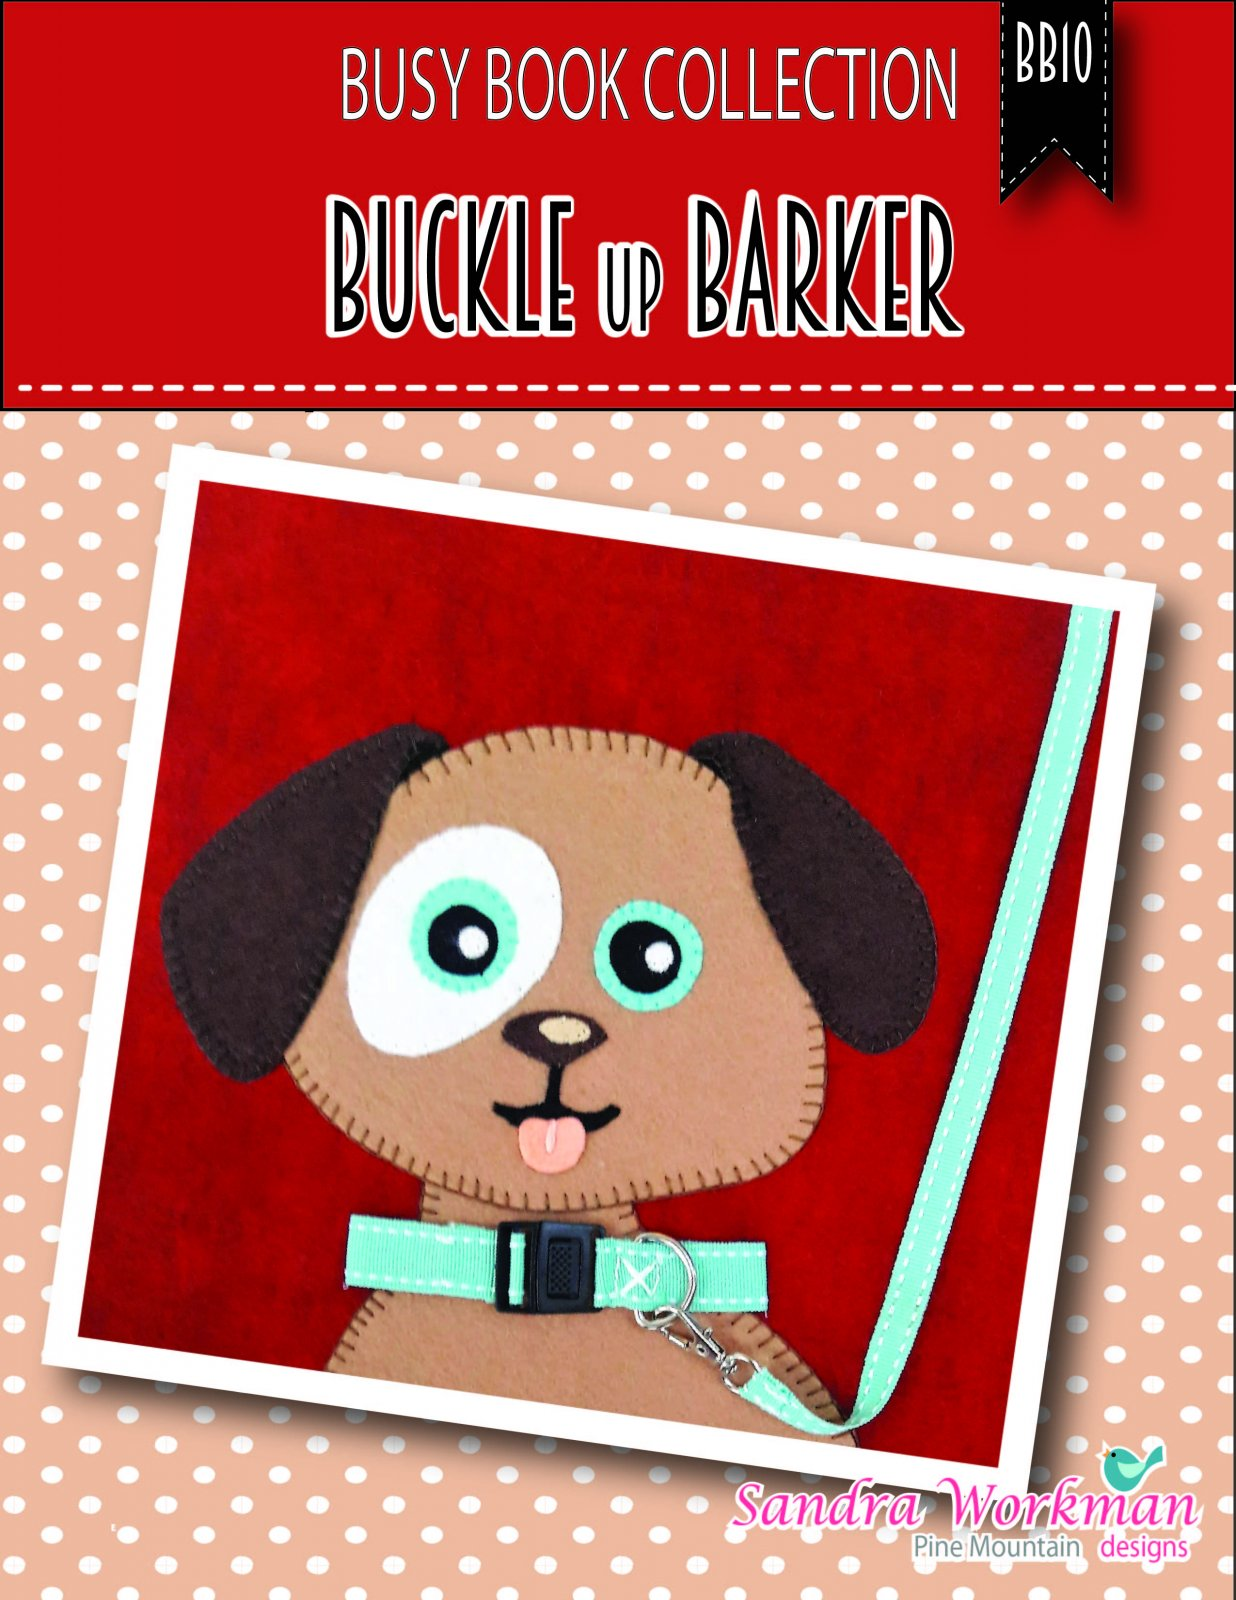 Buckle Up Barker busy book page kit